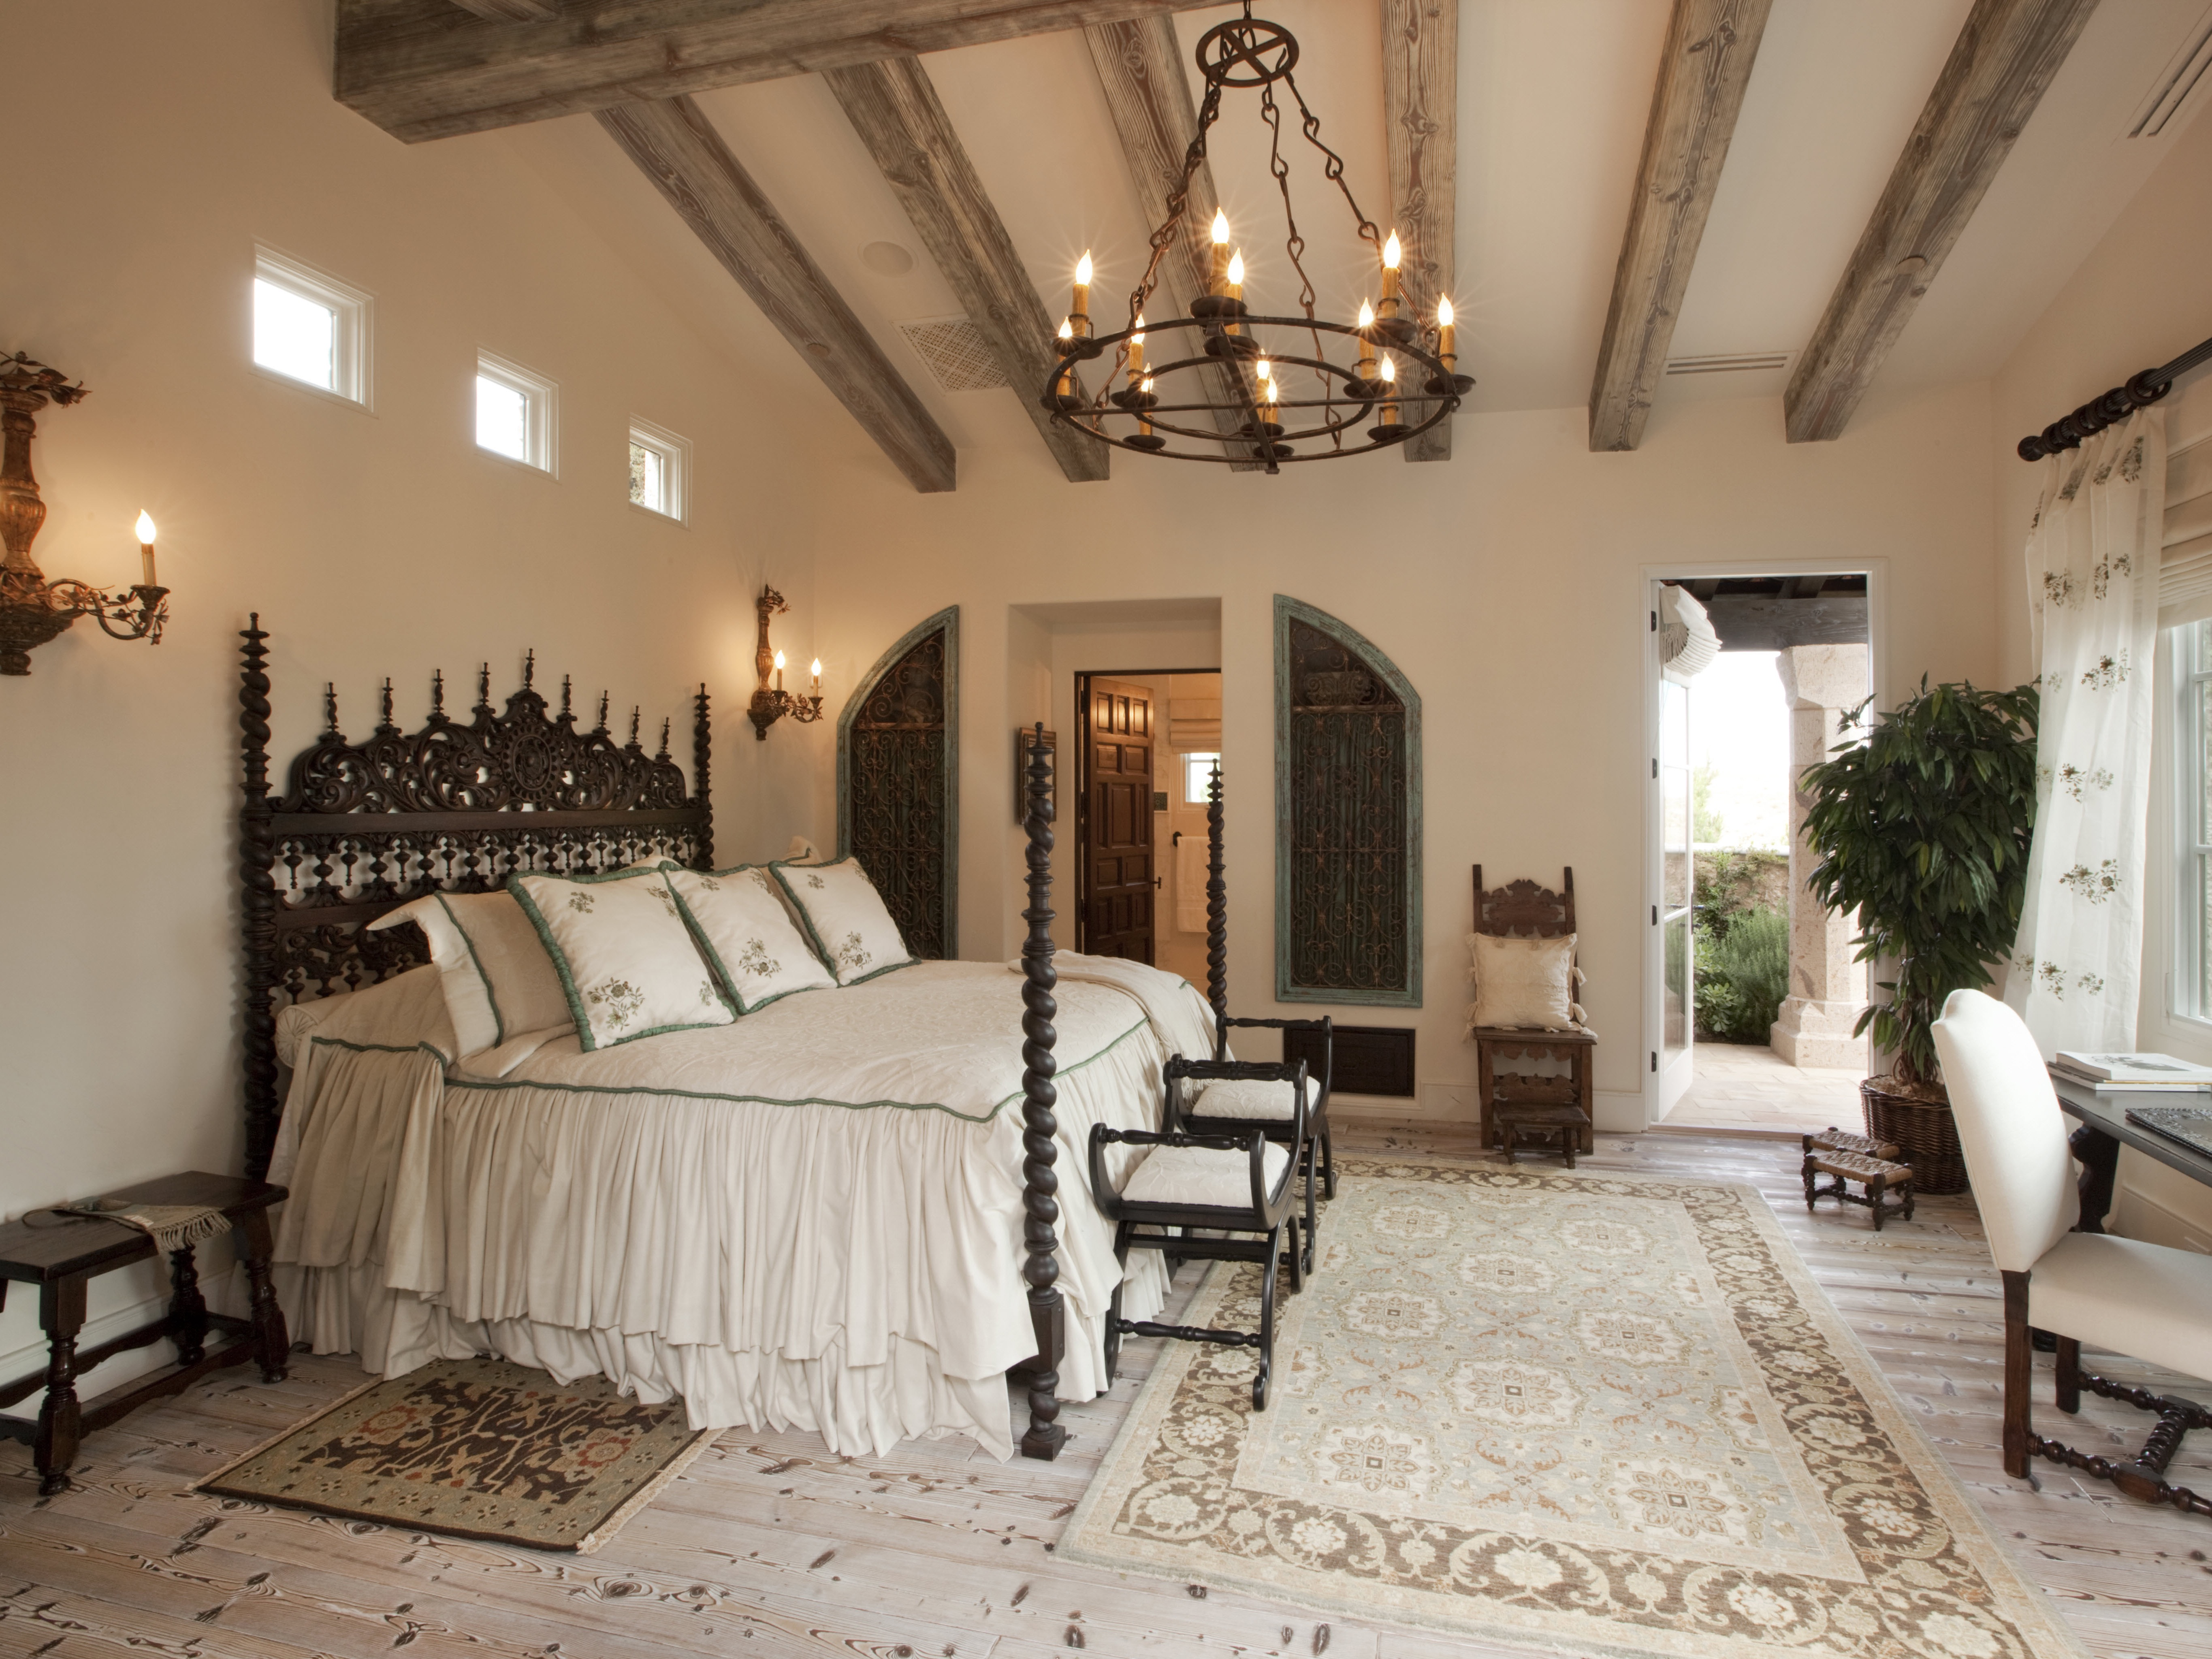 Elegance Indian Bedroom Interior With Ancient Chandelier Lighting (View 17 of 30)